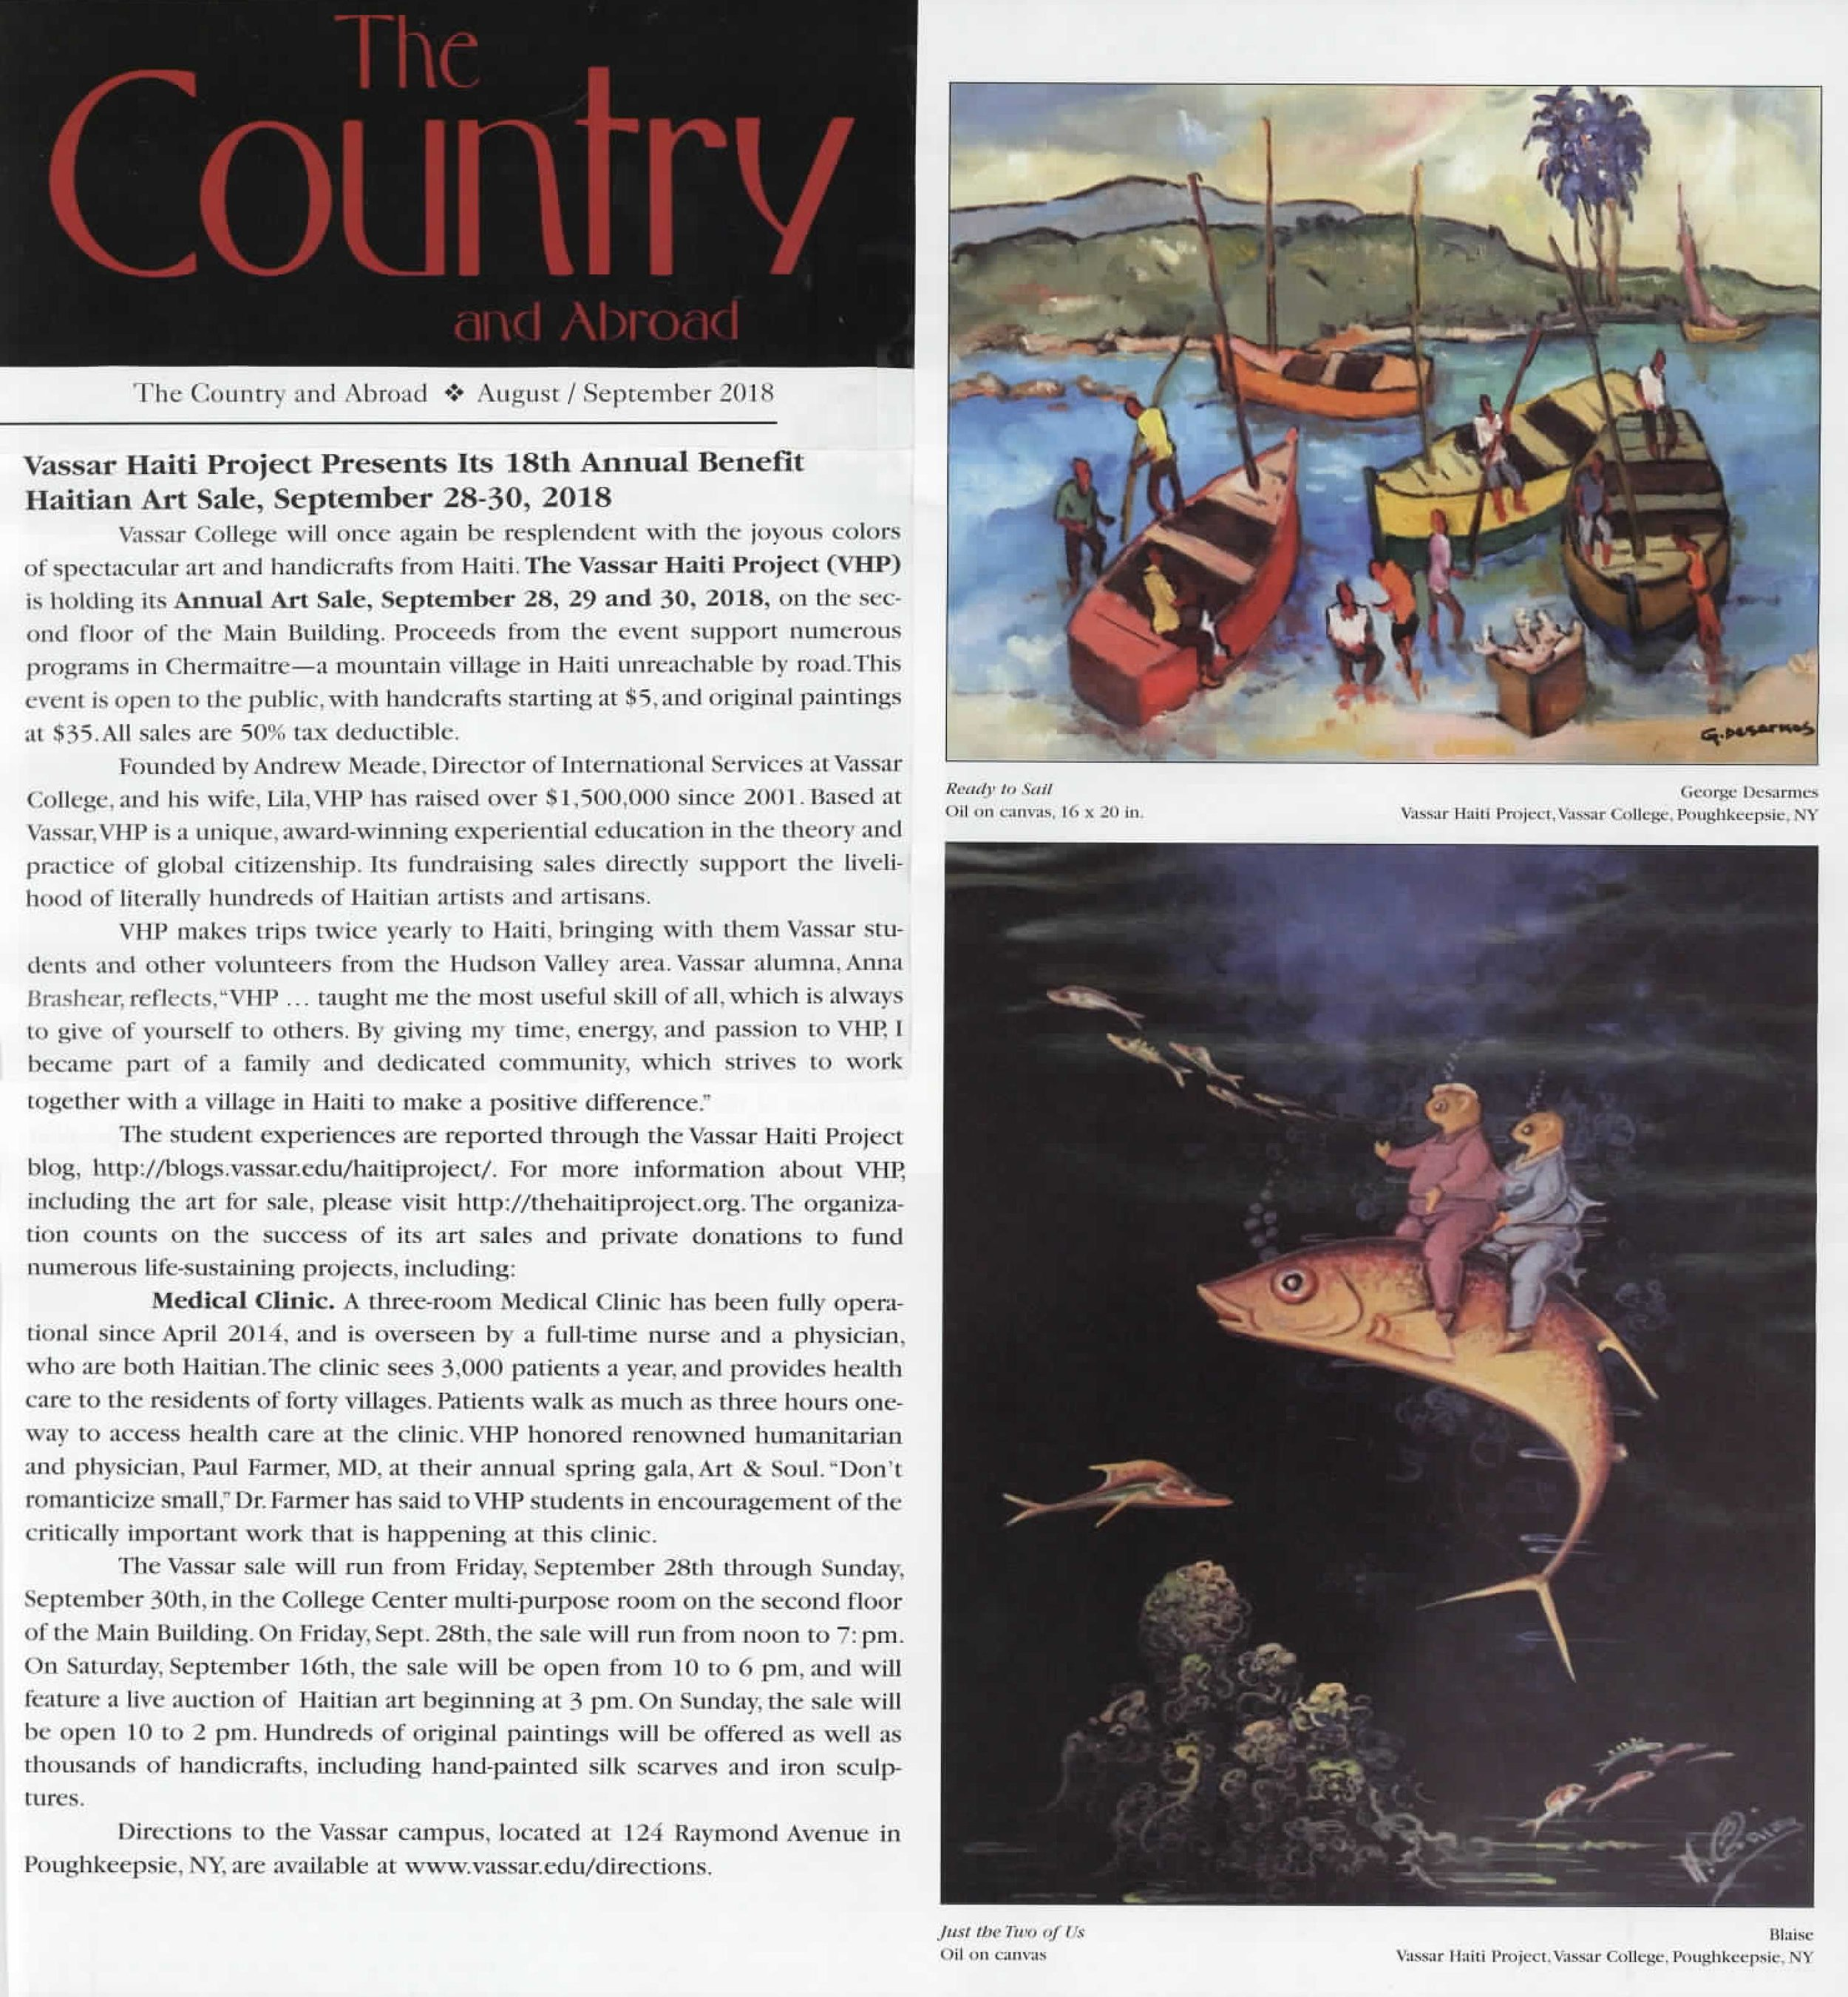 The Country and Abroad_Sept 2018-page-001.jpg